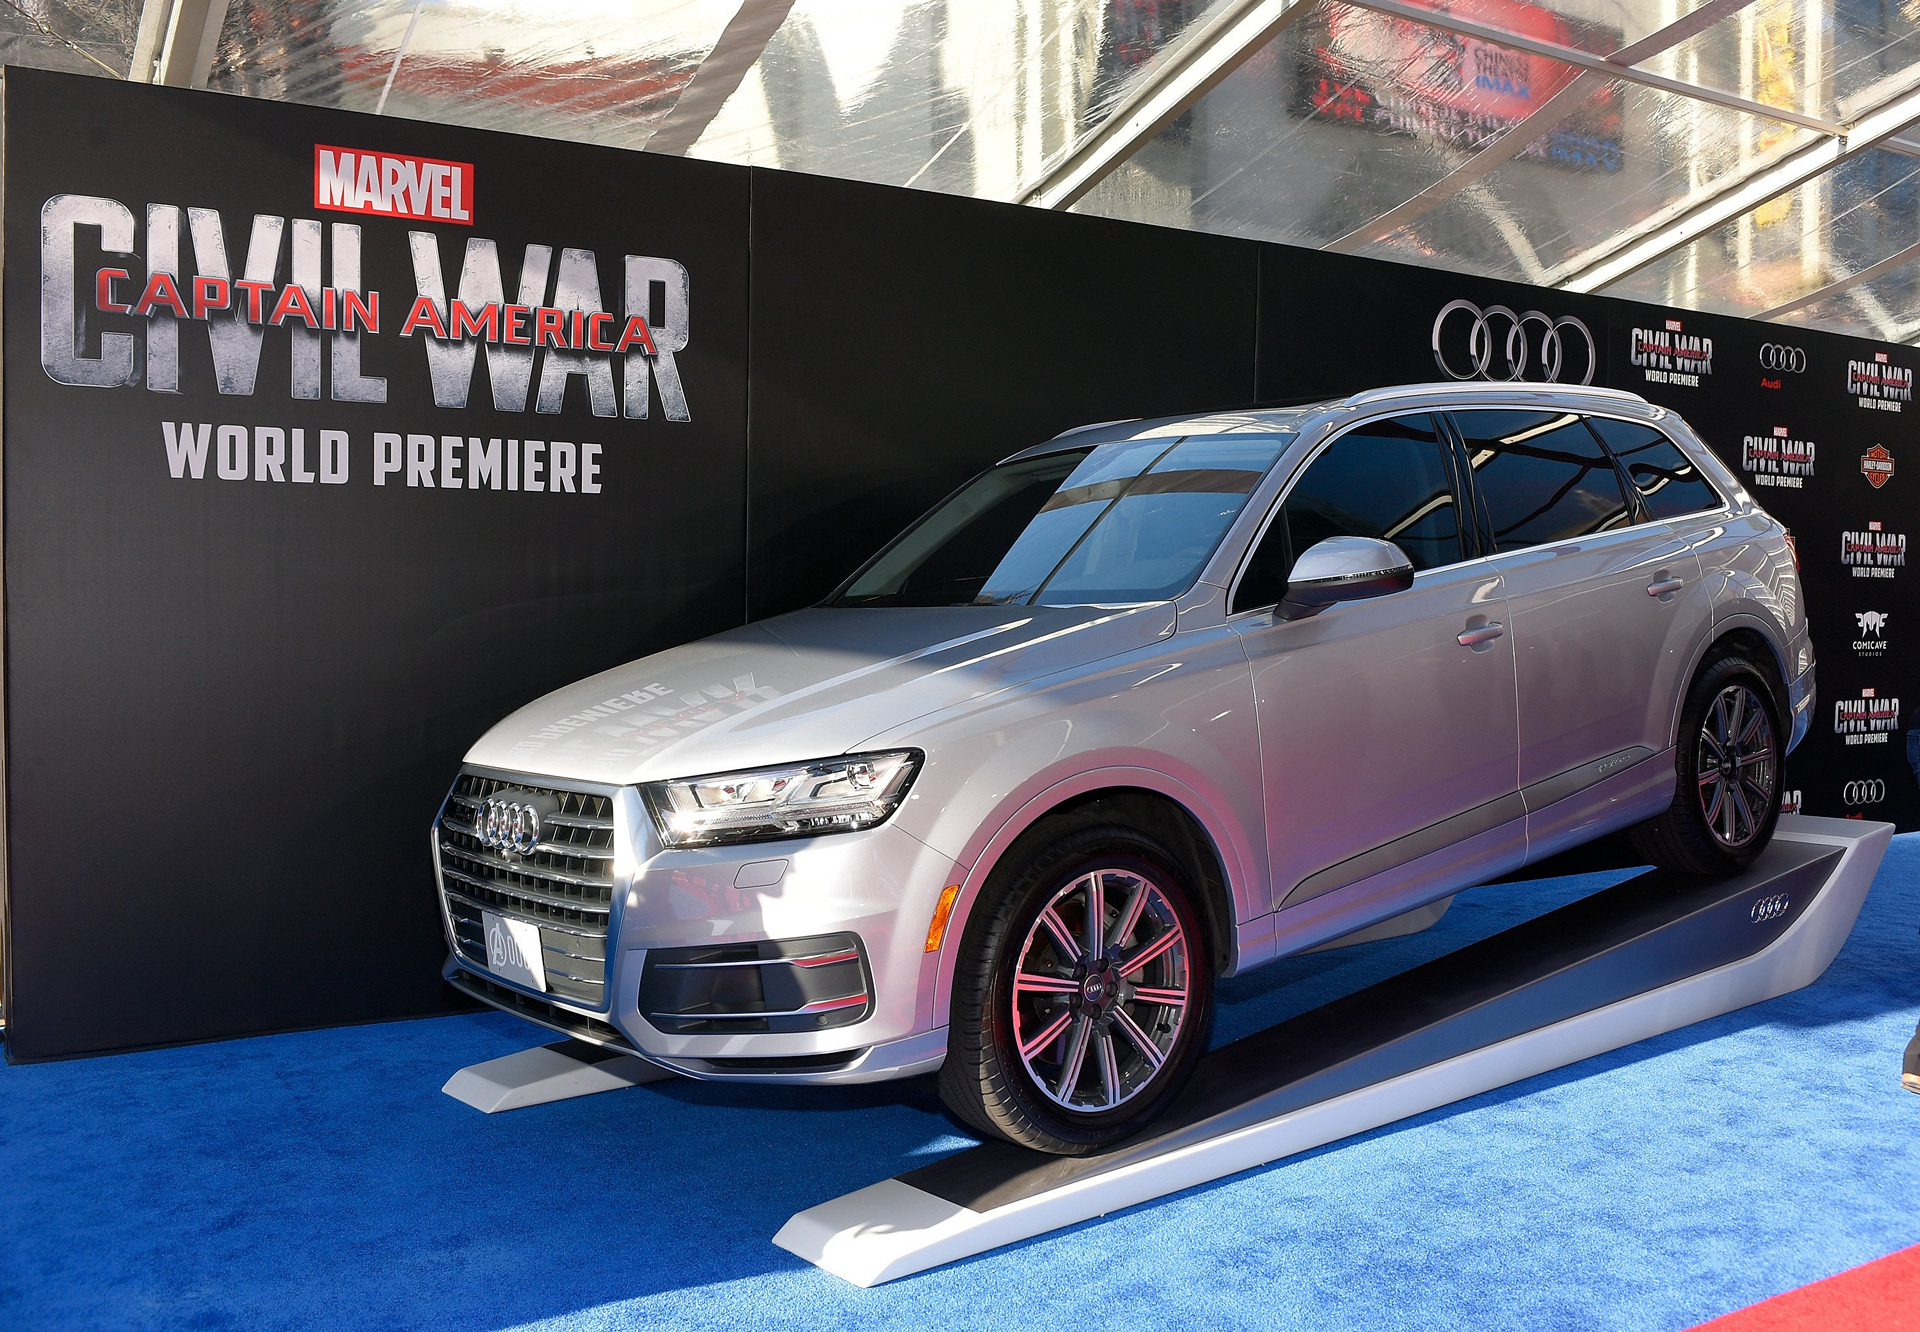 audi celebrates the premiere of captain america civil war